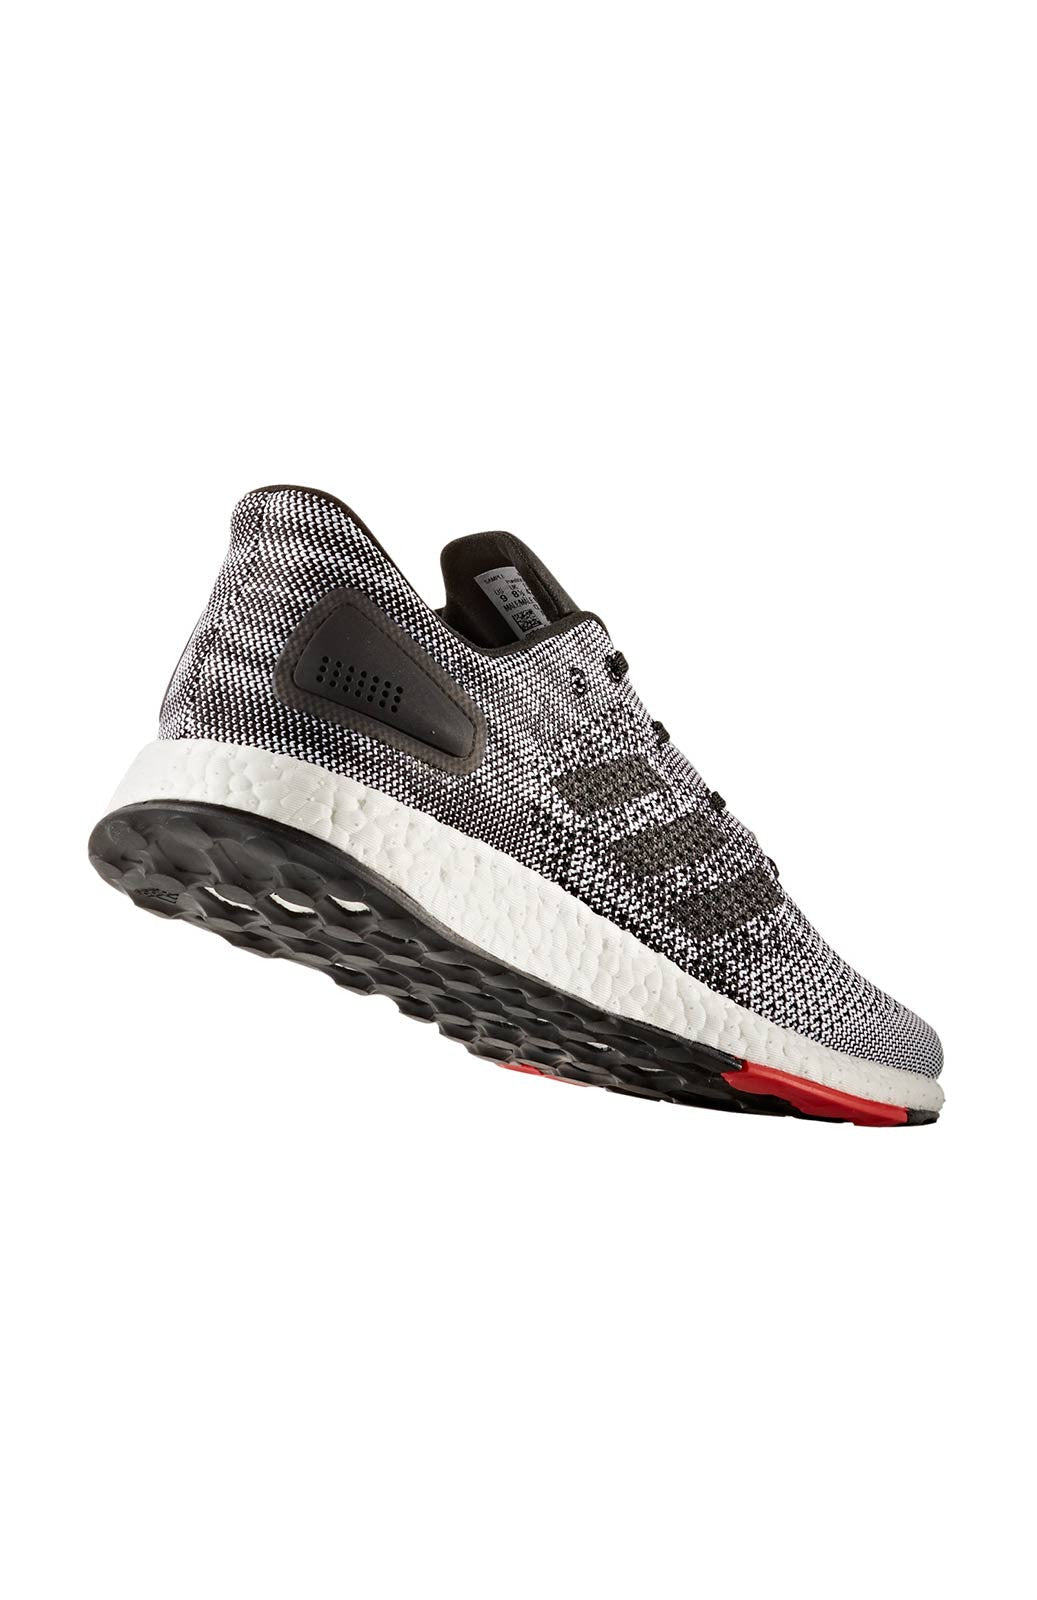 ADIDAS Men's Pure Boost DPR - Black/ Grey image 3 - The Sports Edit